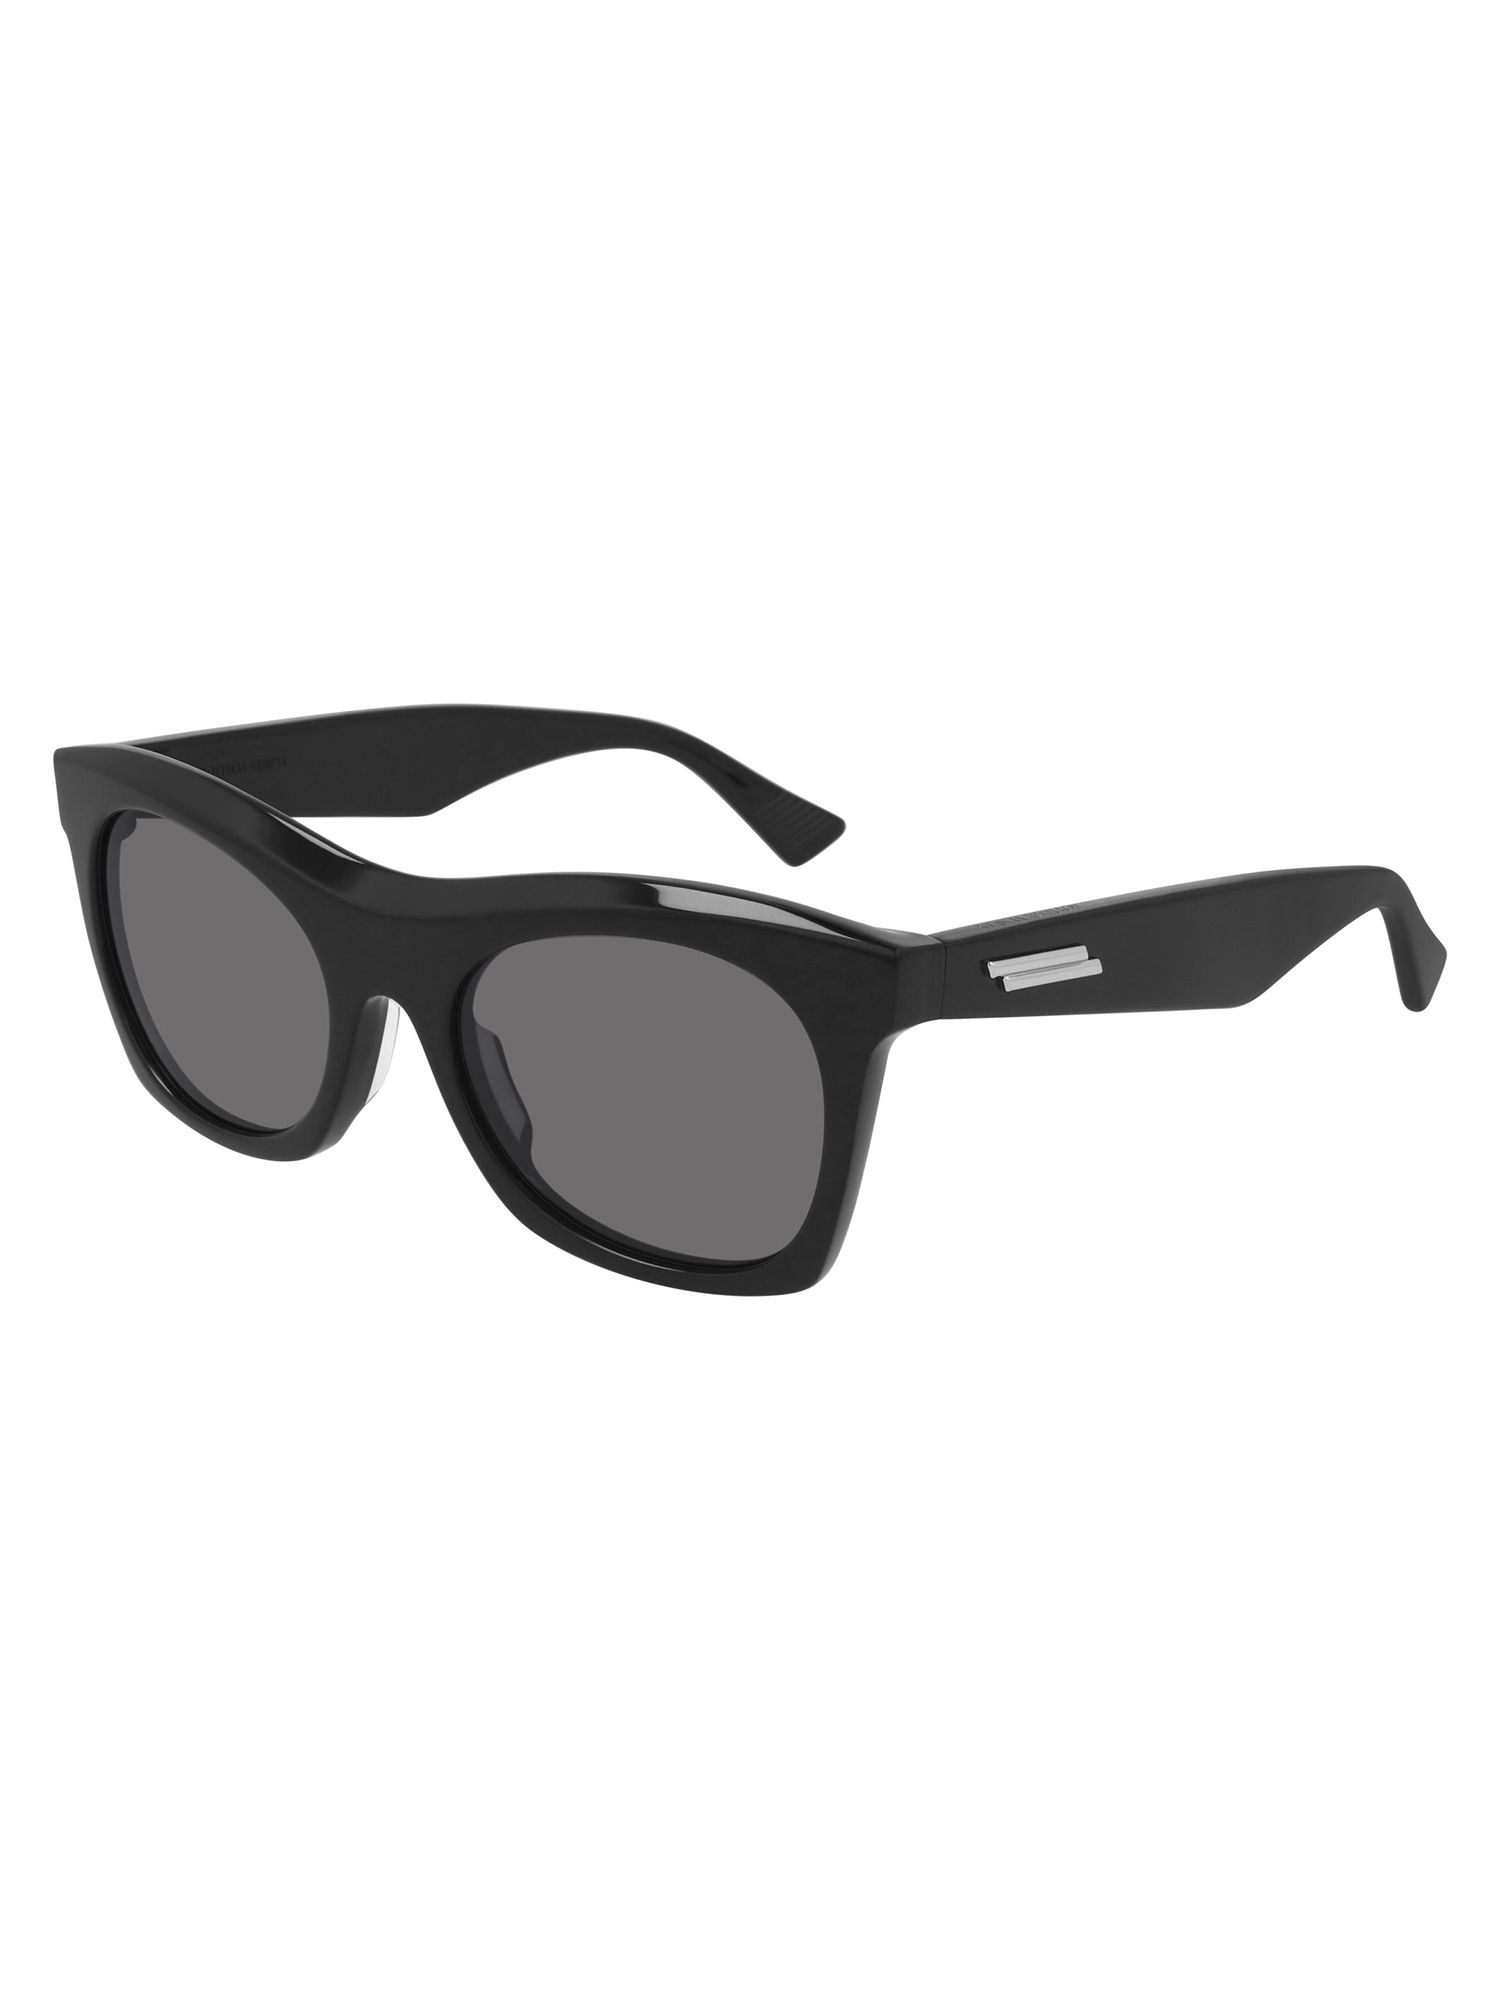 Bottega Veneta BOTTEGA VENETA WOMEN'S BLACK METAL SUNGLASSES